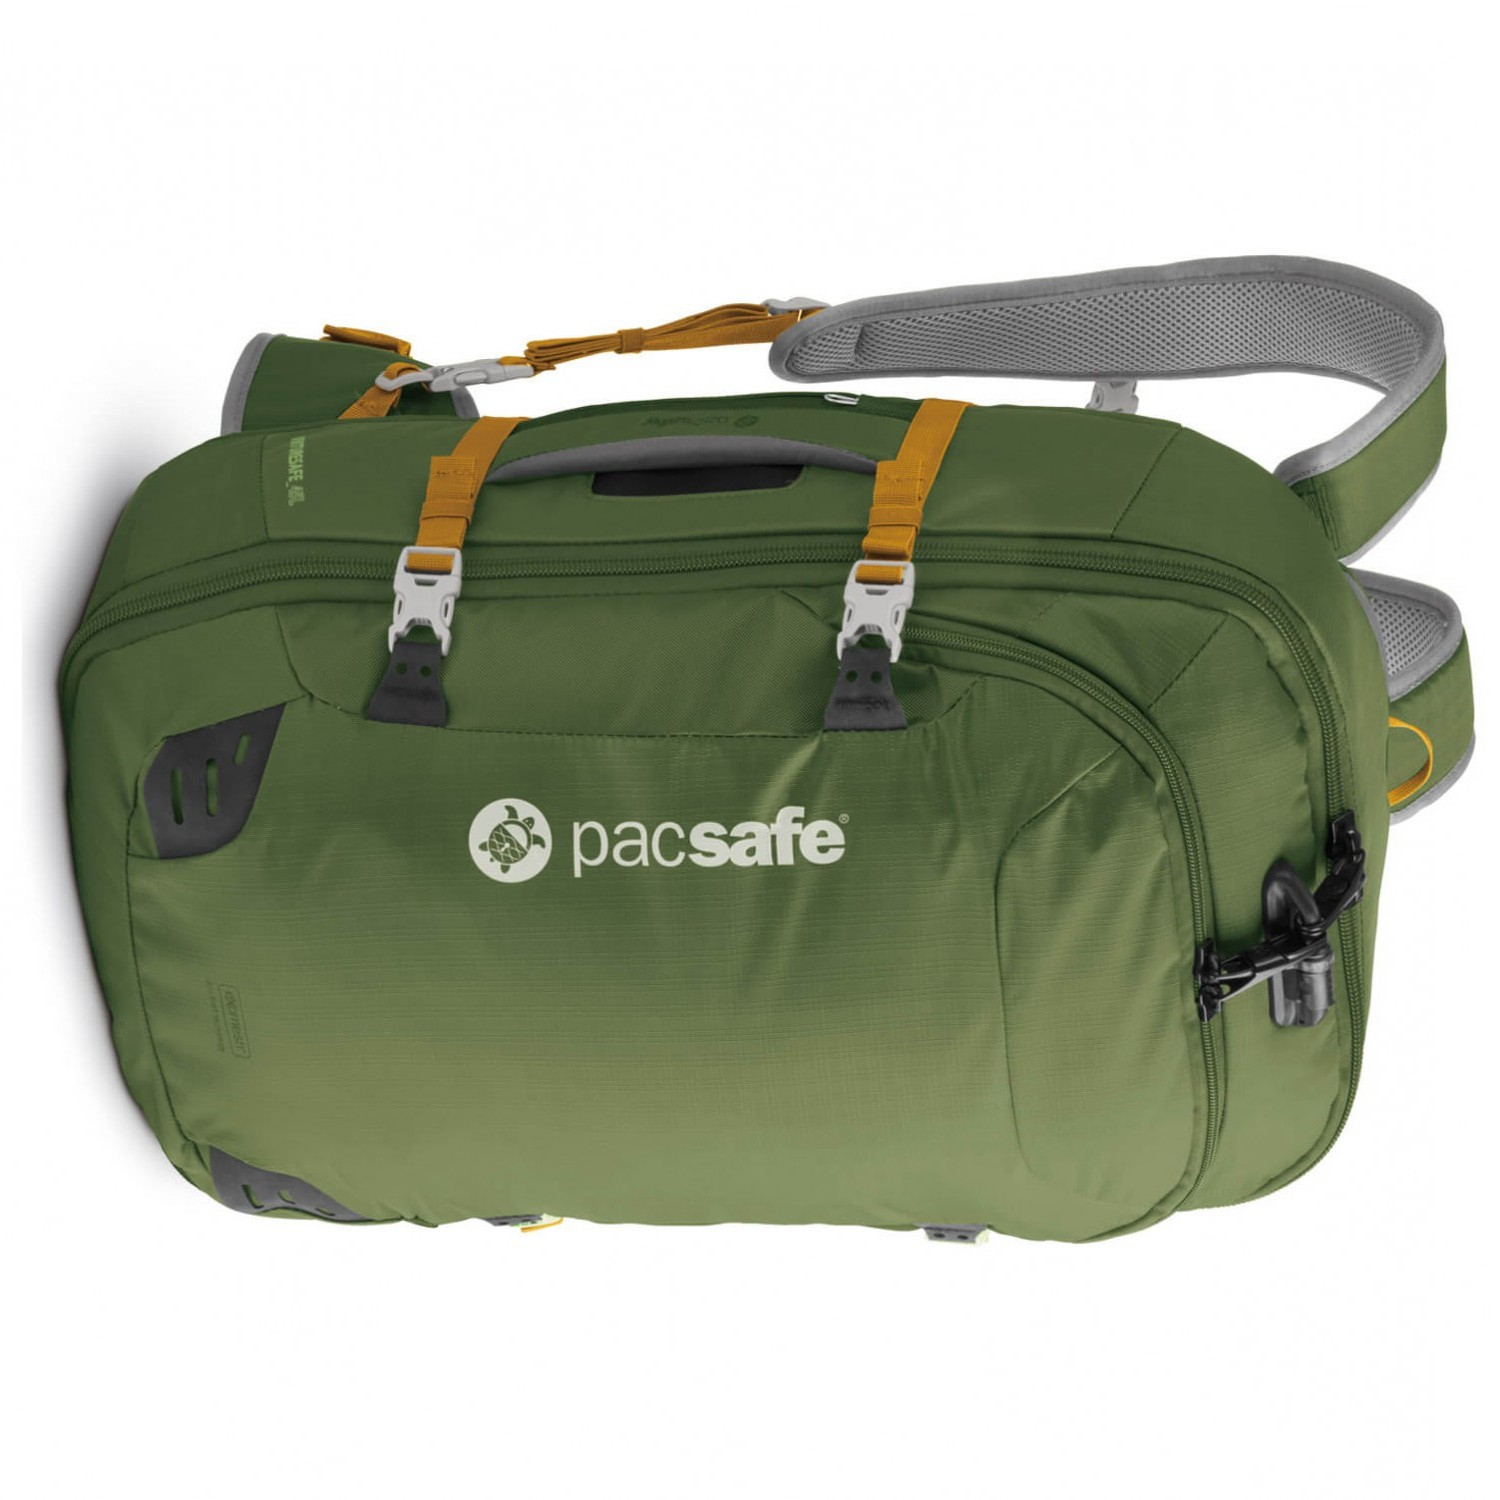 pacsafe-venturesafe-45l-gii-travel-backpack